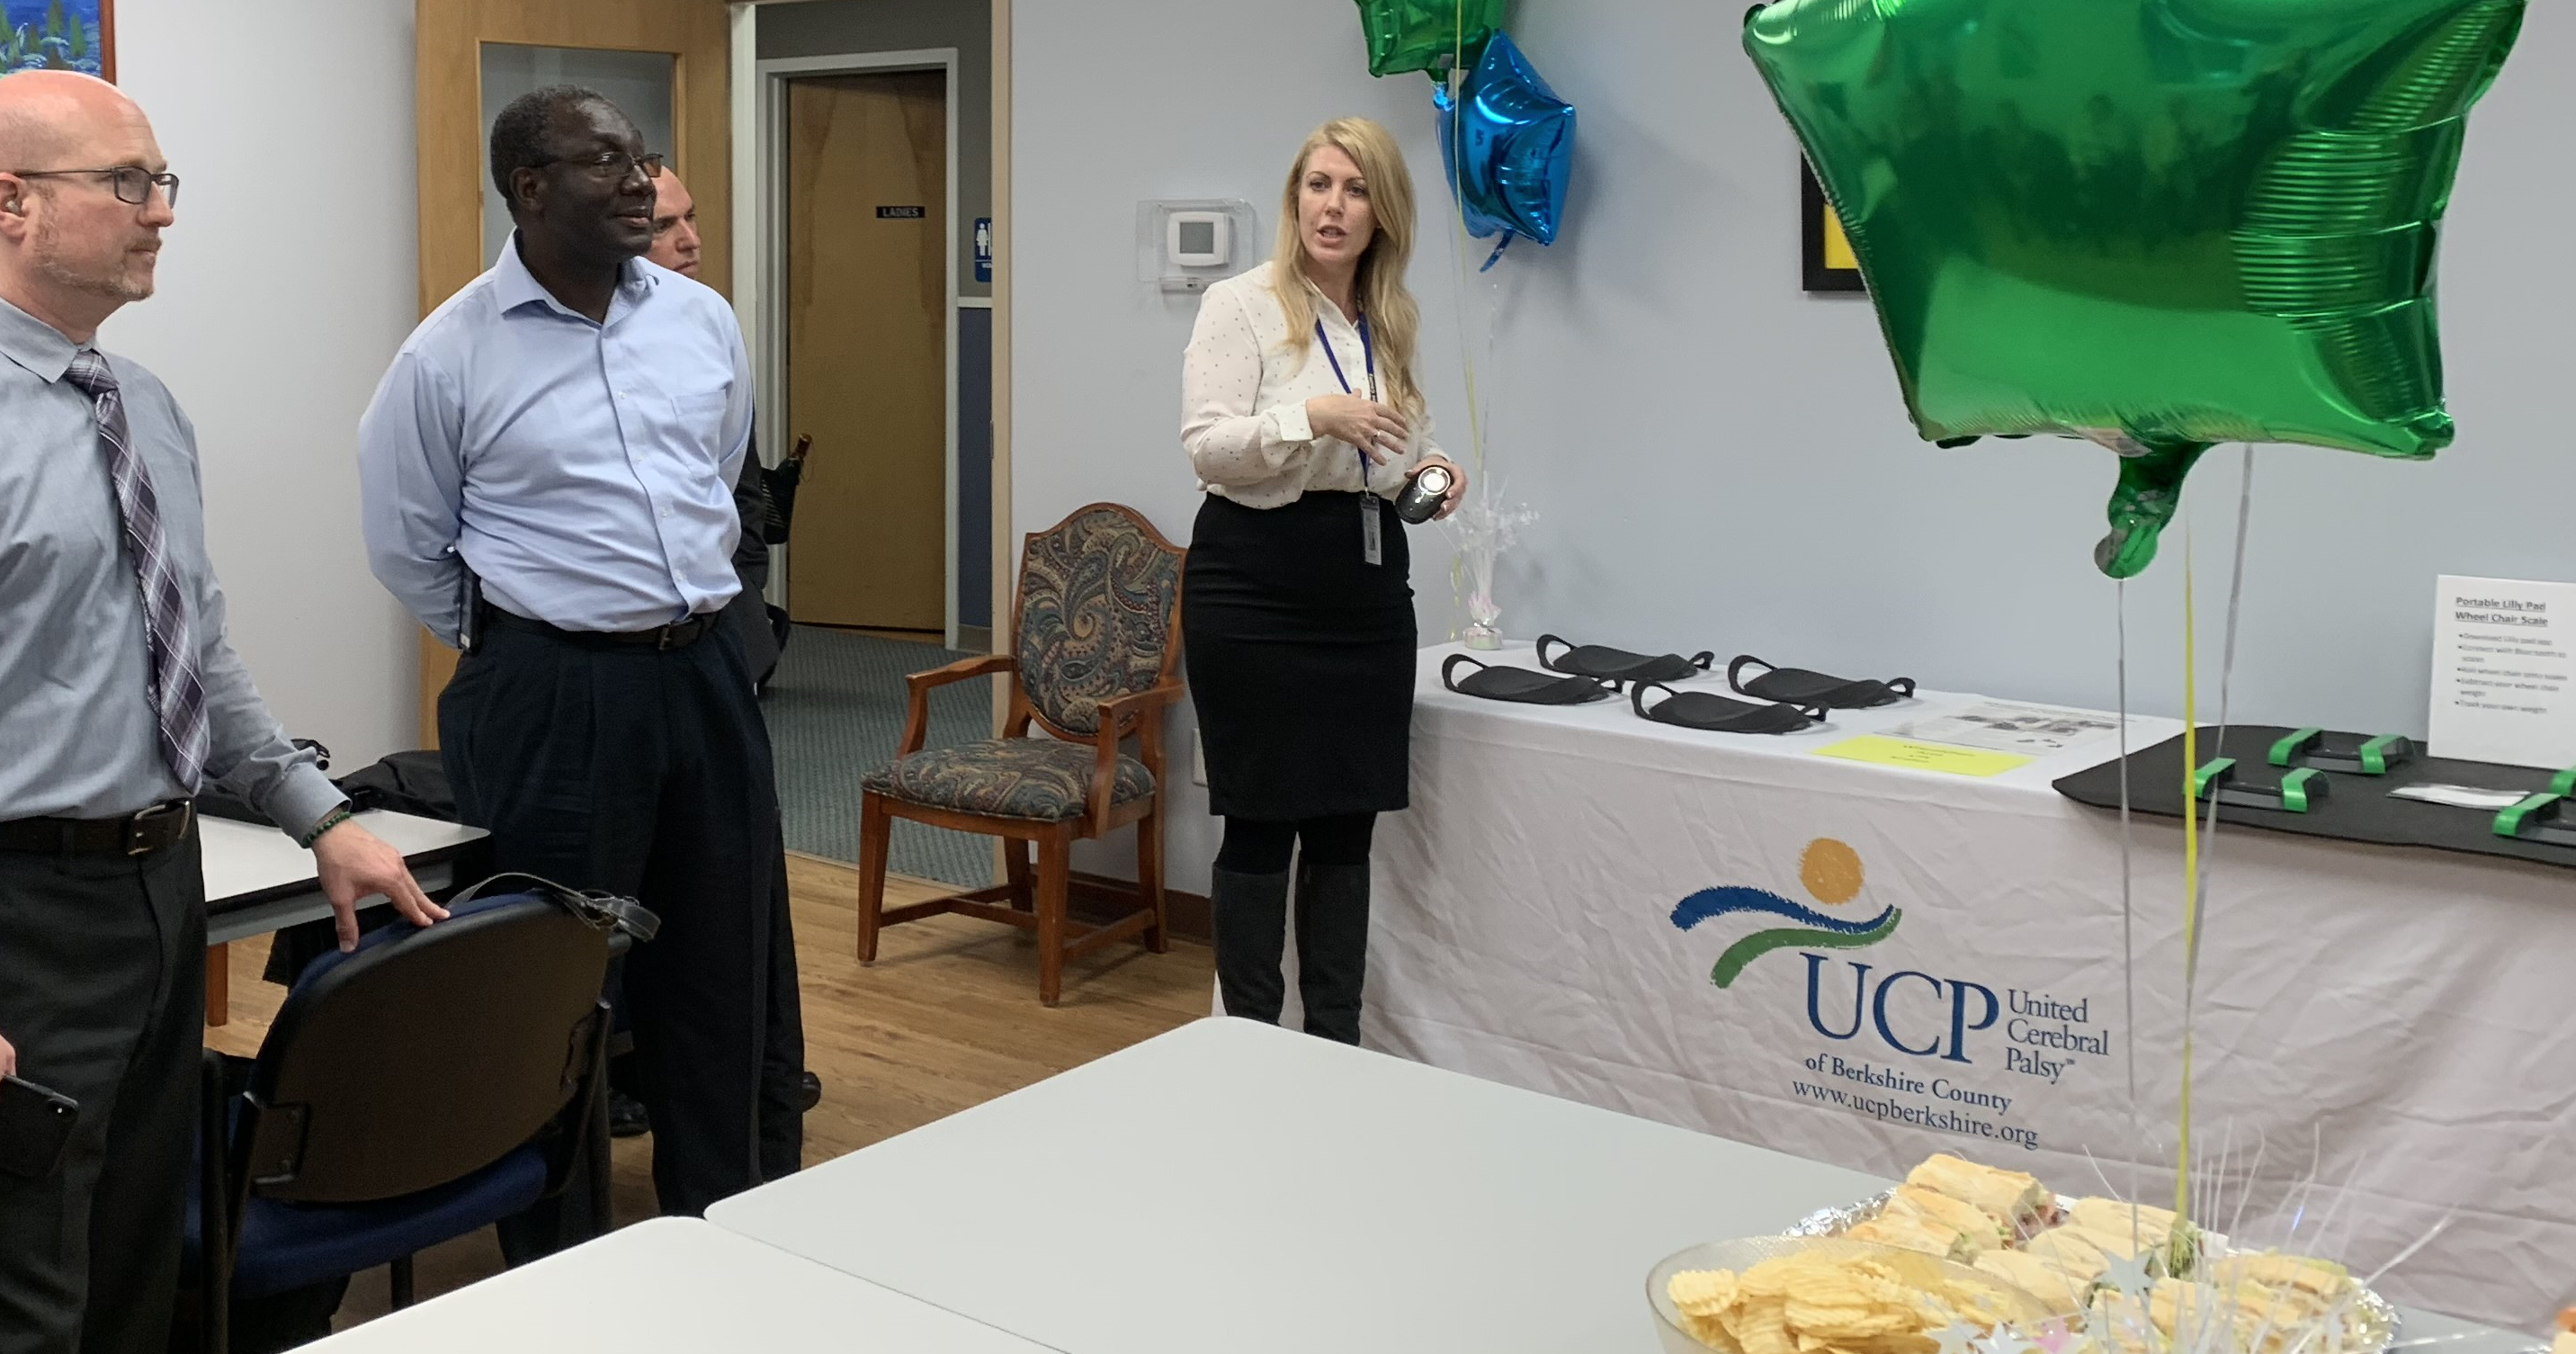 A woman speaking holding a device next to a table with equipment and an UCP banner. There are balloons and food on a table in the foreground. Three men stand listening.